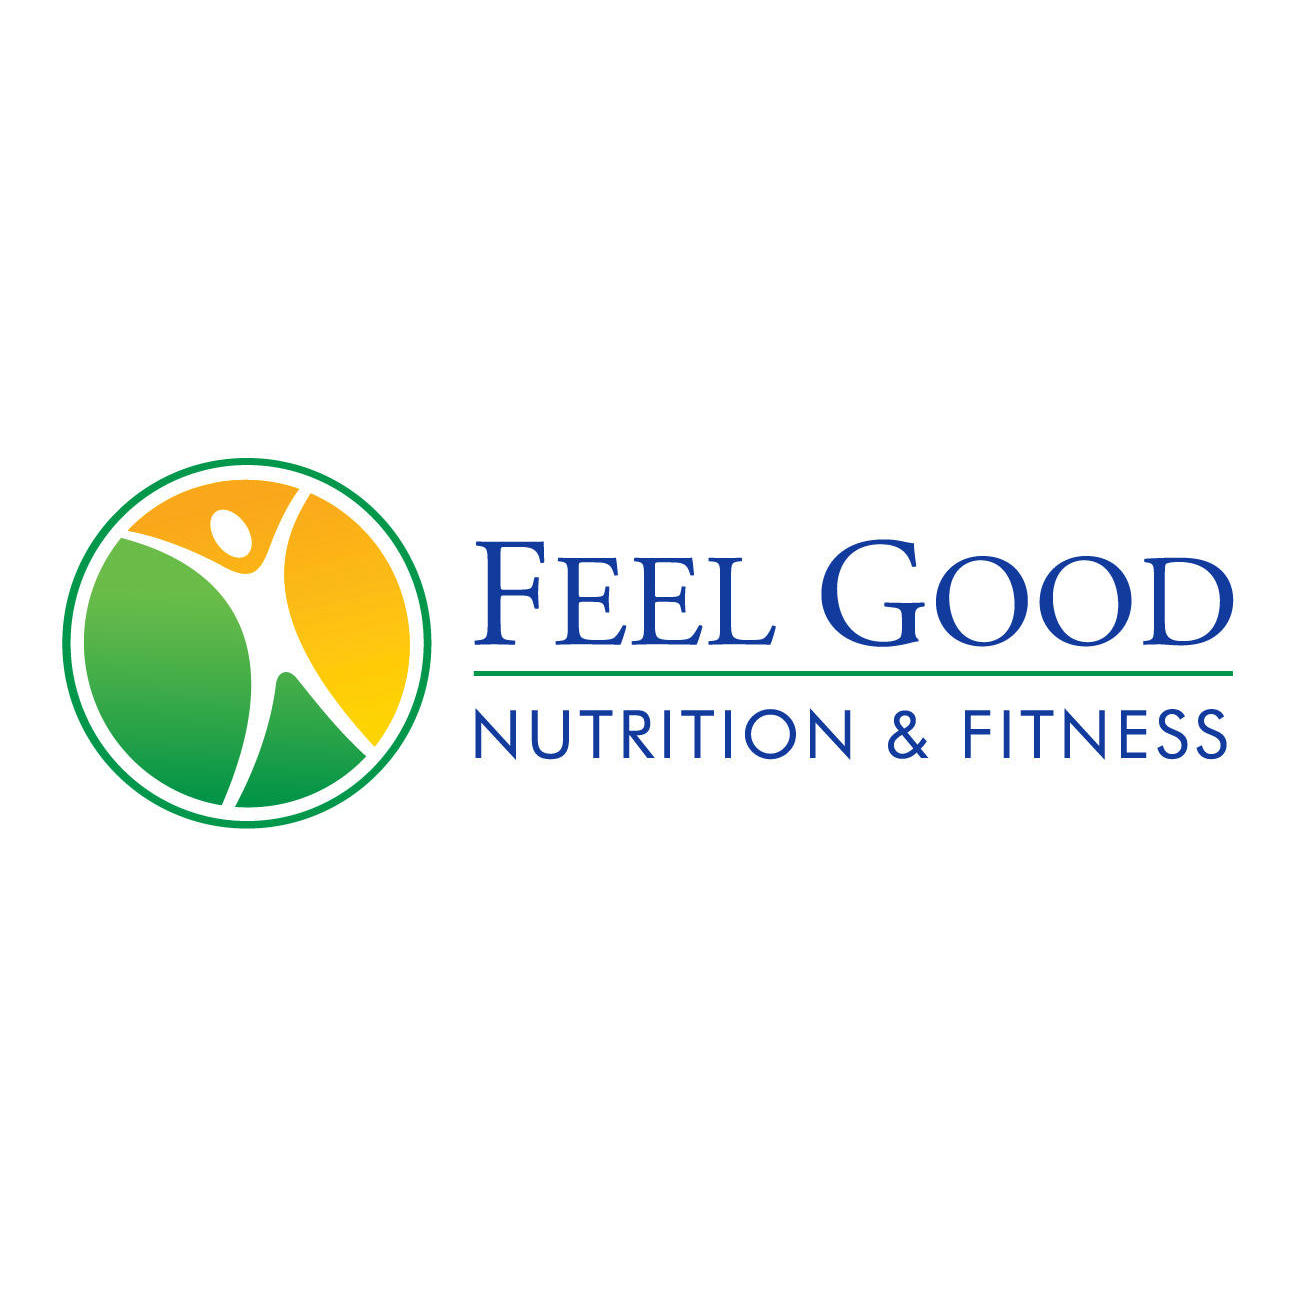 Feel Good Nutrition & Fitness